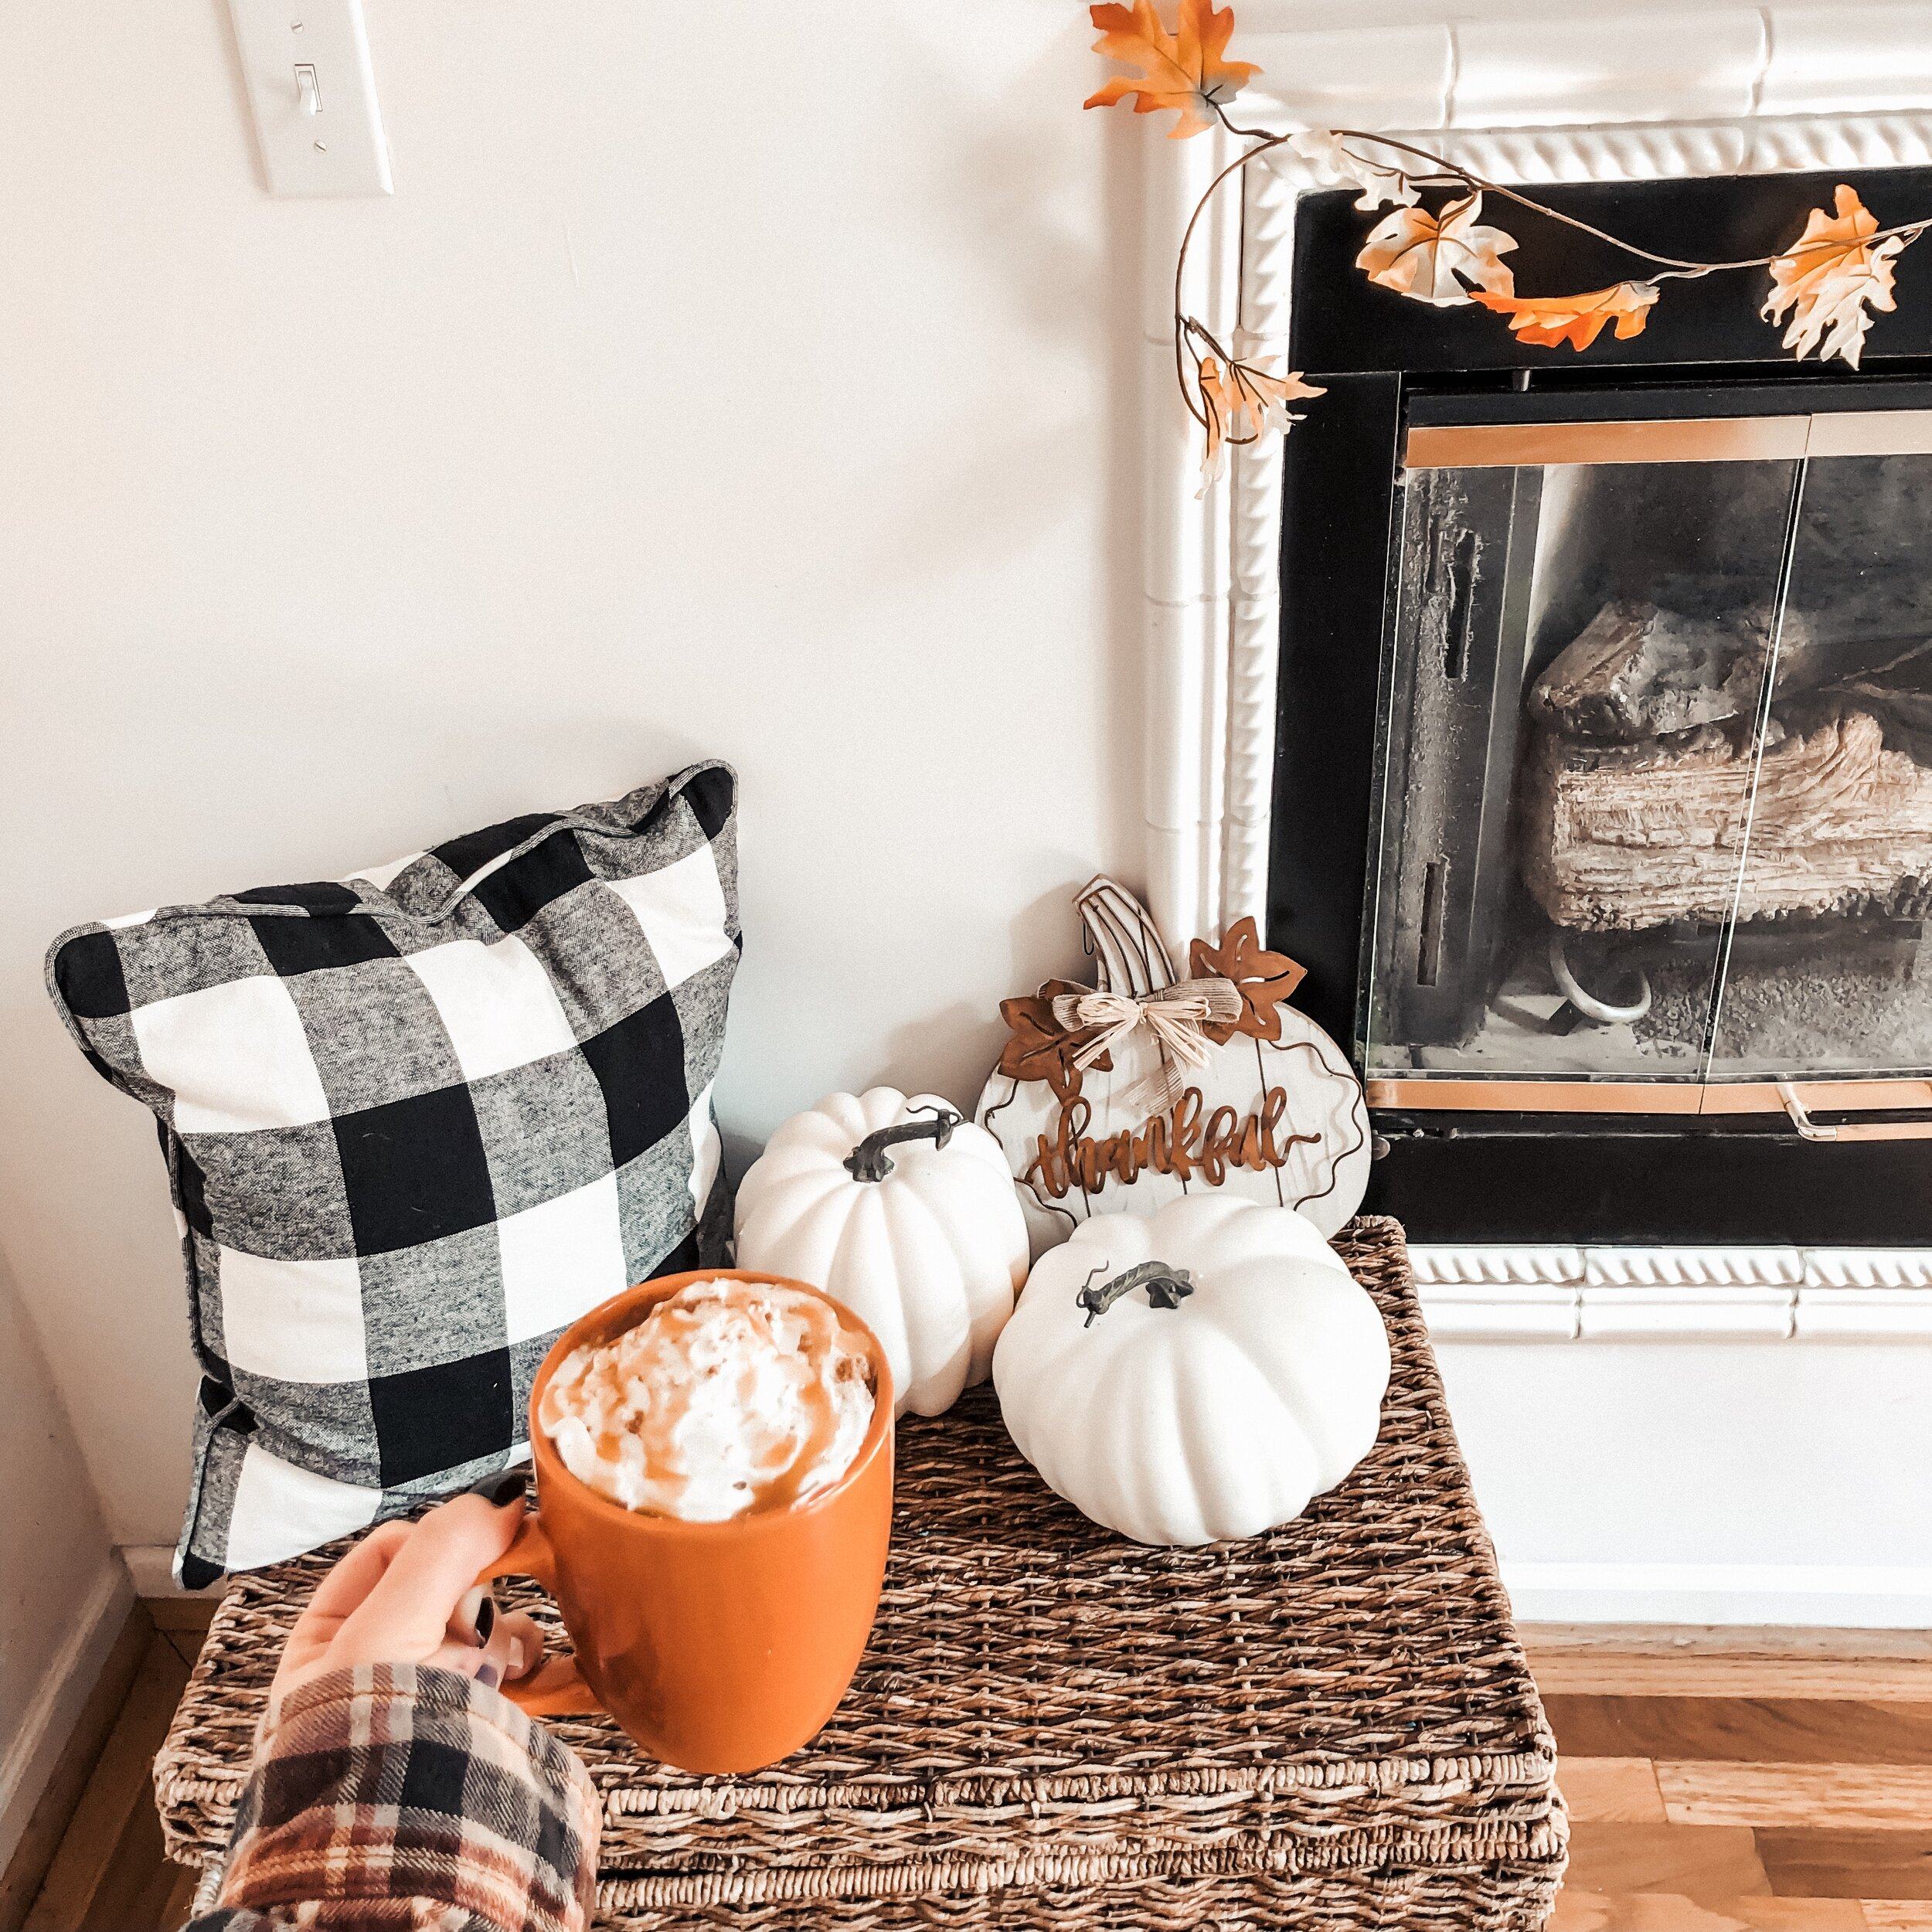 DIY Pumpkin Spice Latte two ways: store bought and homemade! from @lifeasaloewen